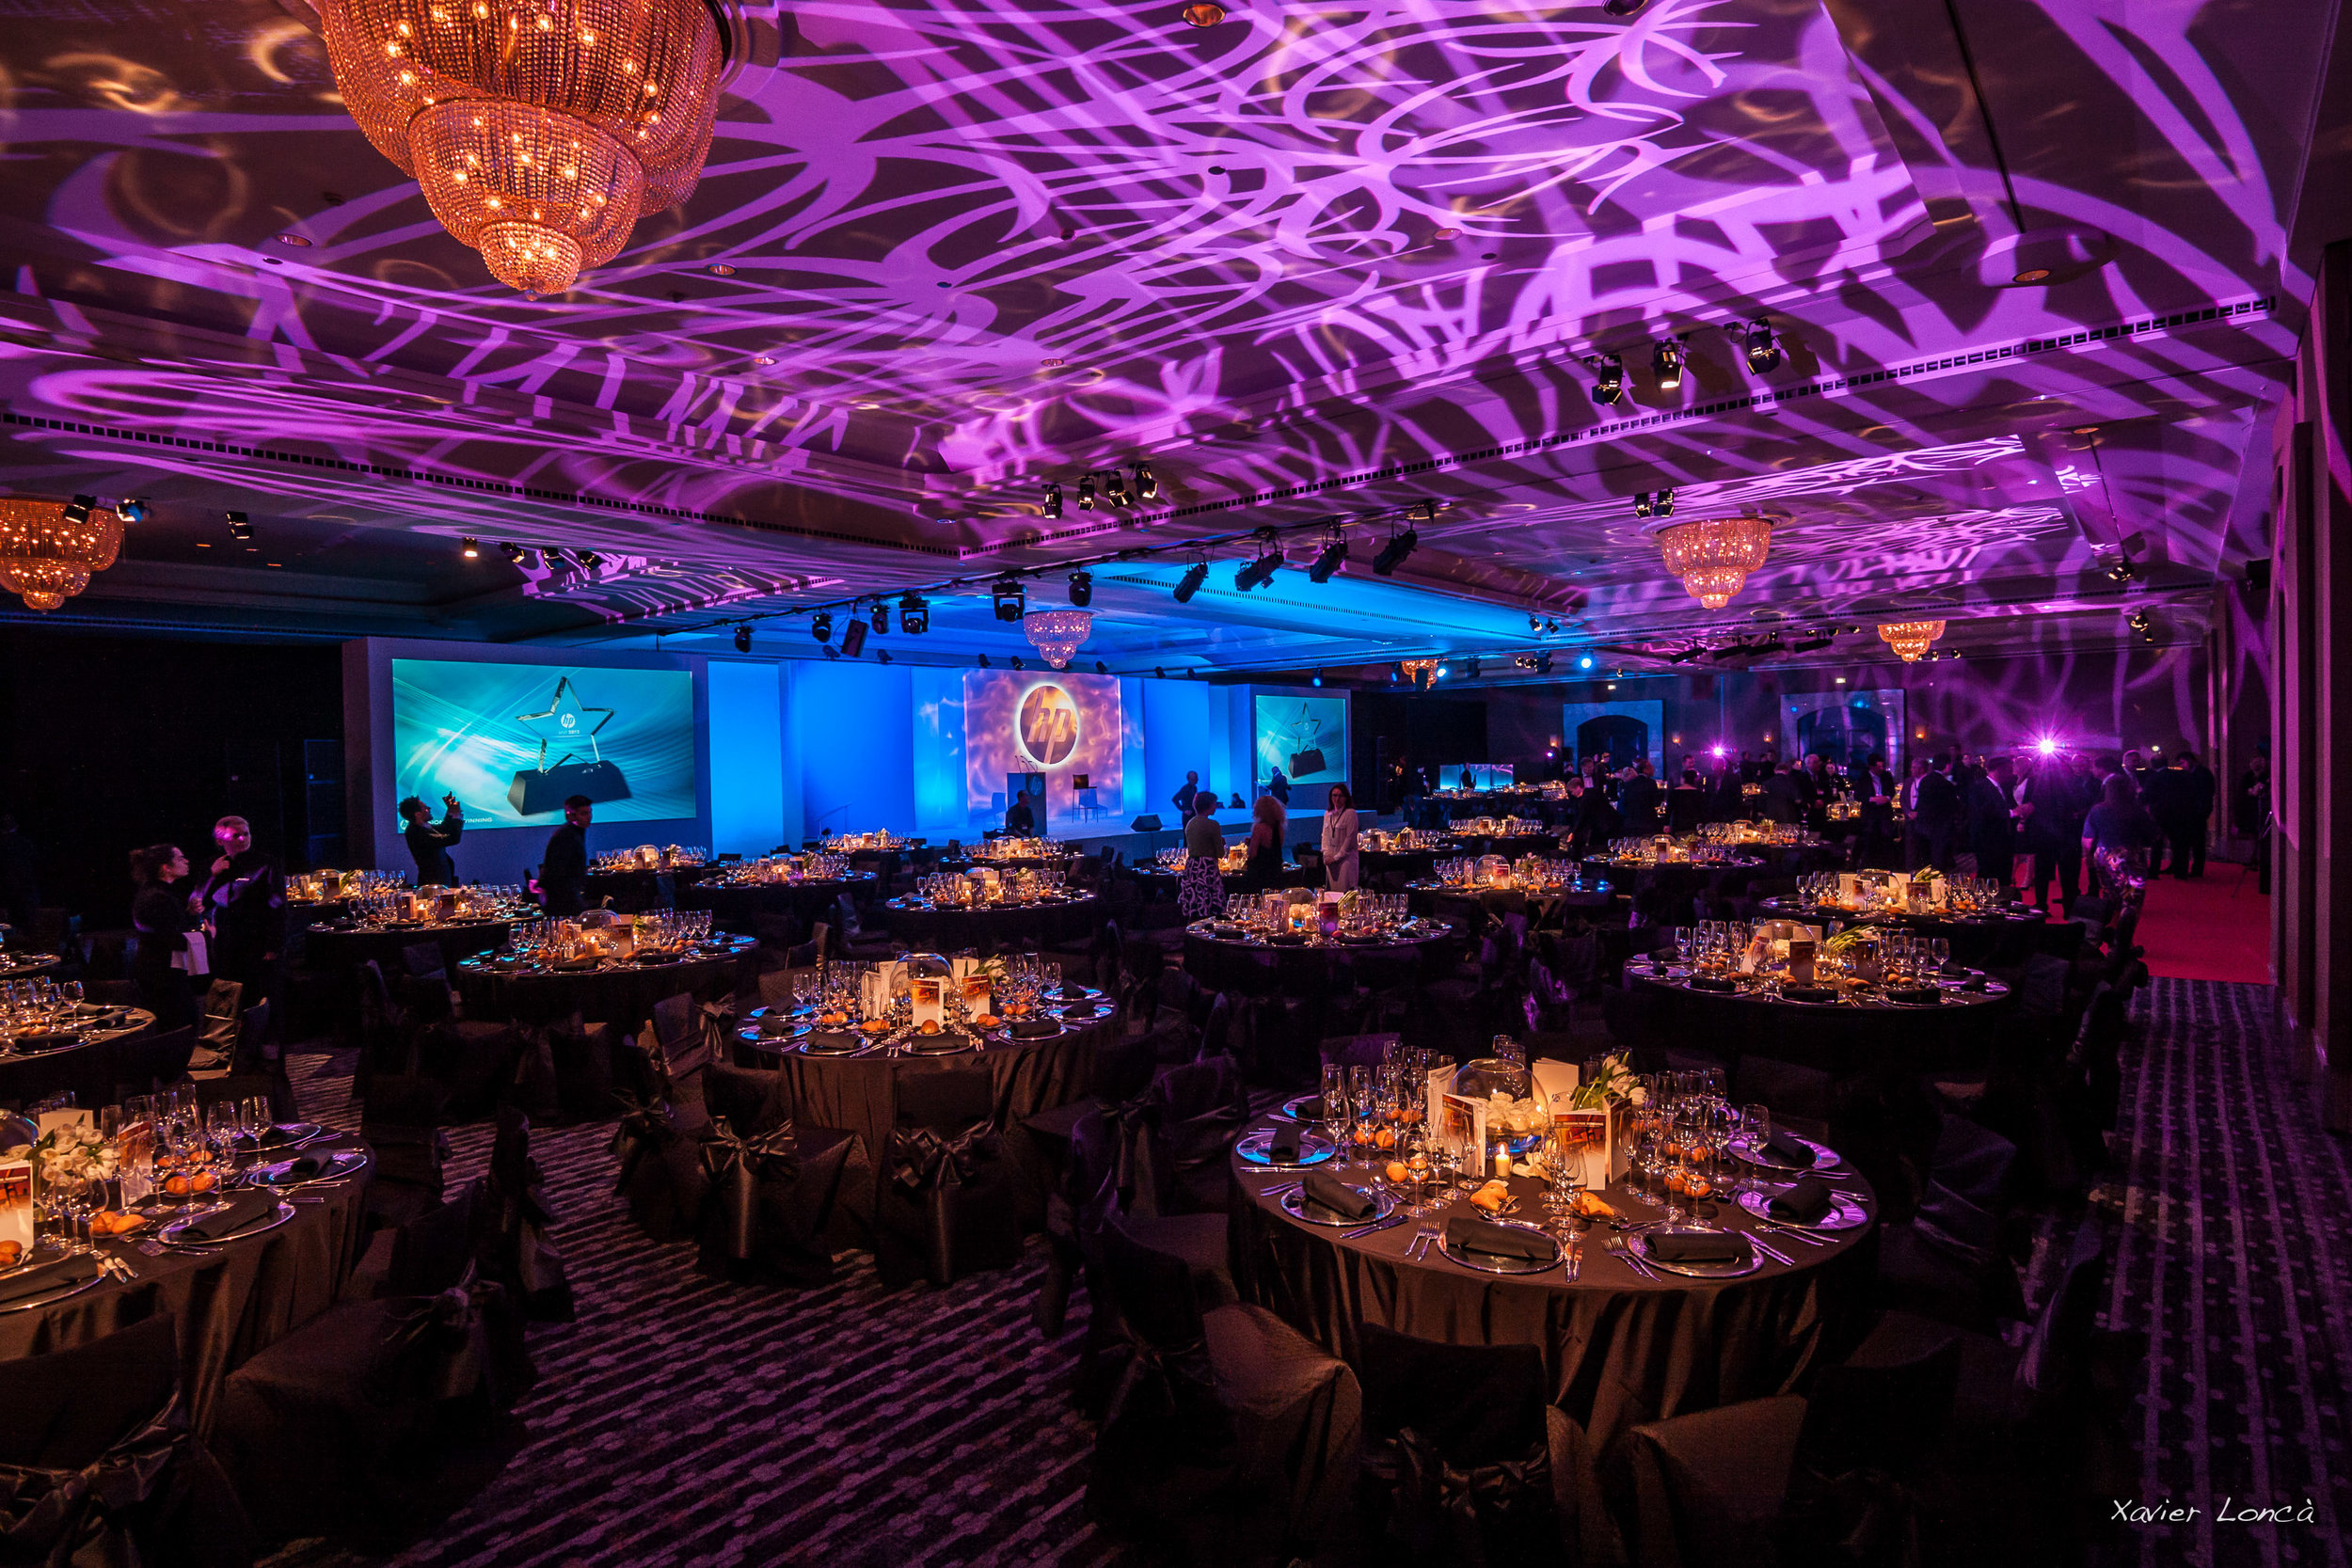 Lighting - Lighting is the quite possibly the most important factor in setting the right atmosphere for an event. From soft and warm ambiance to party beams, we stock all the fixtures in-house and have countless hours of experience in programming the right mood.